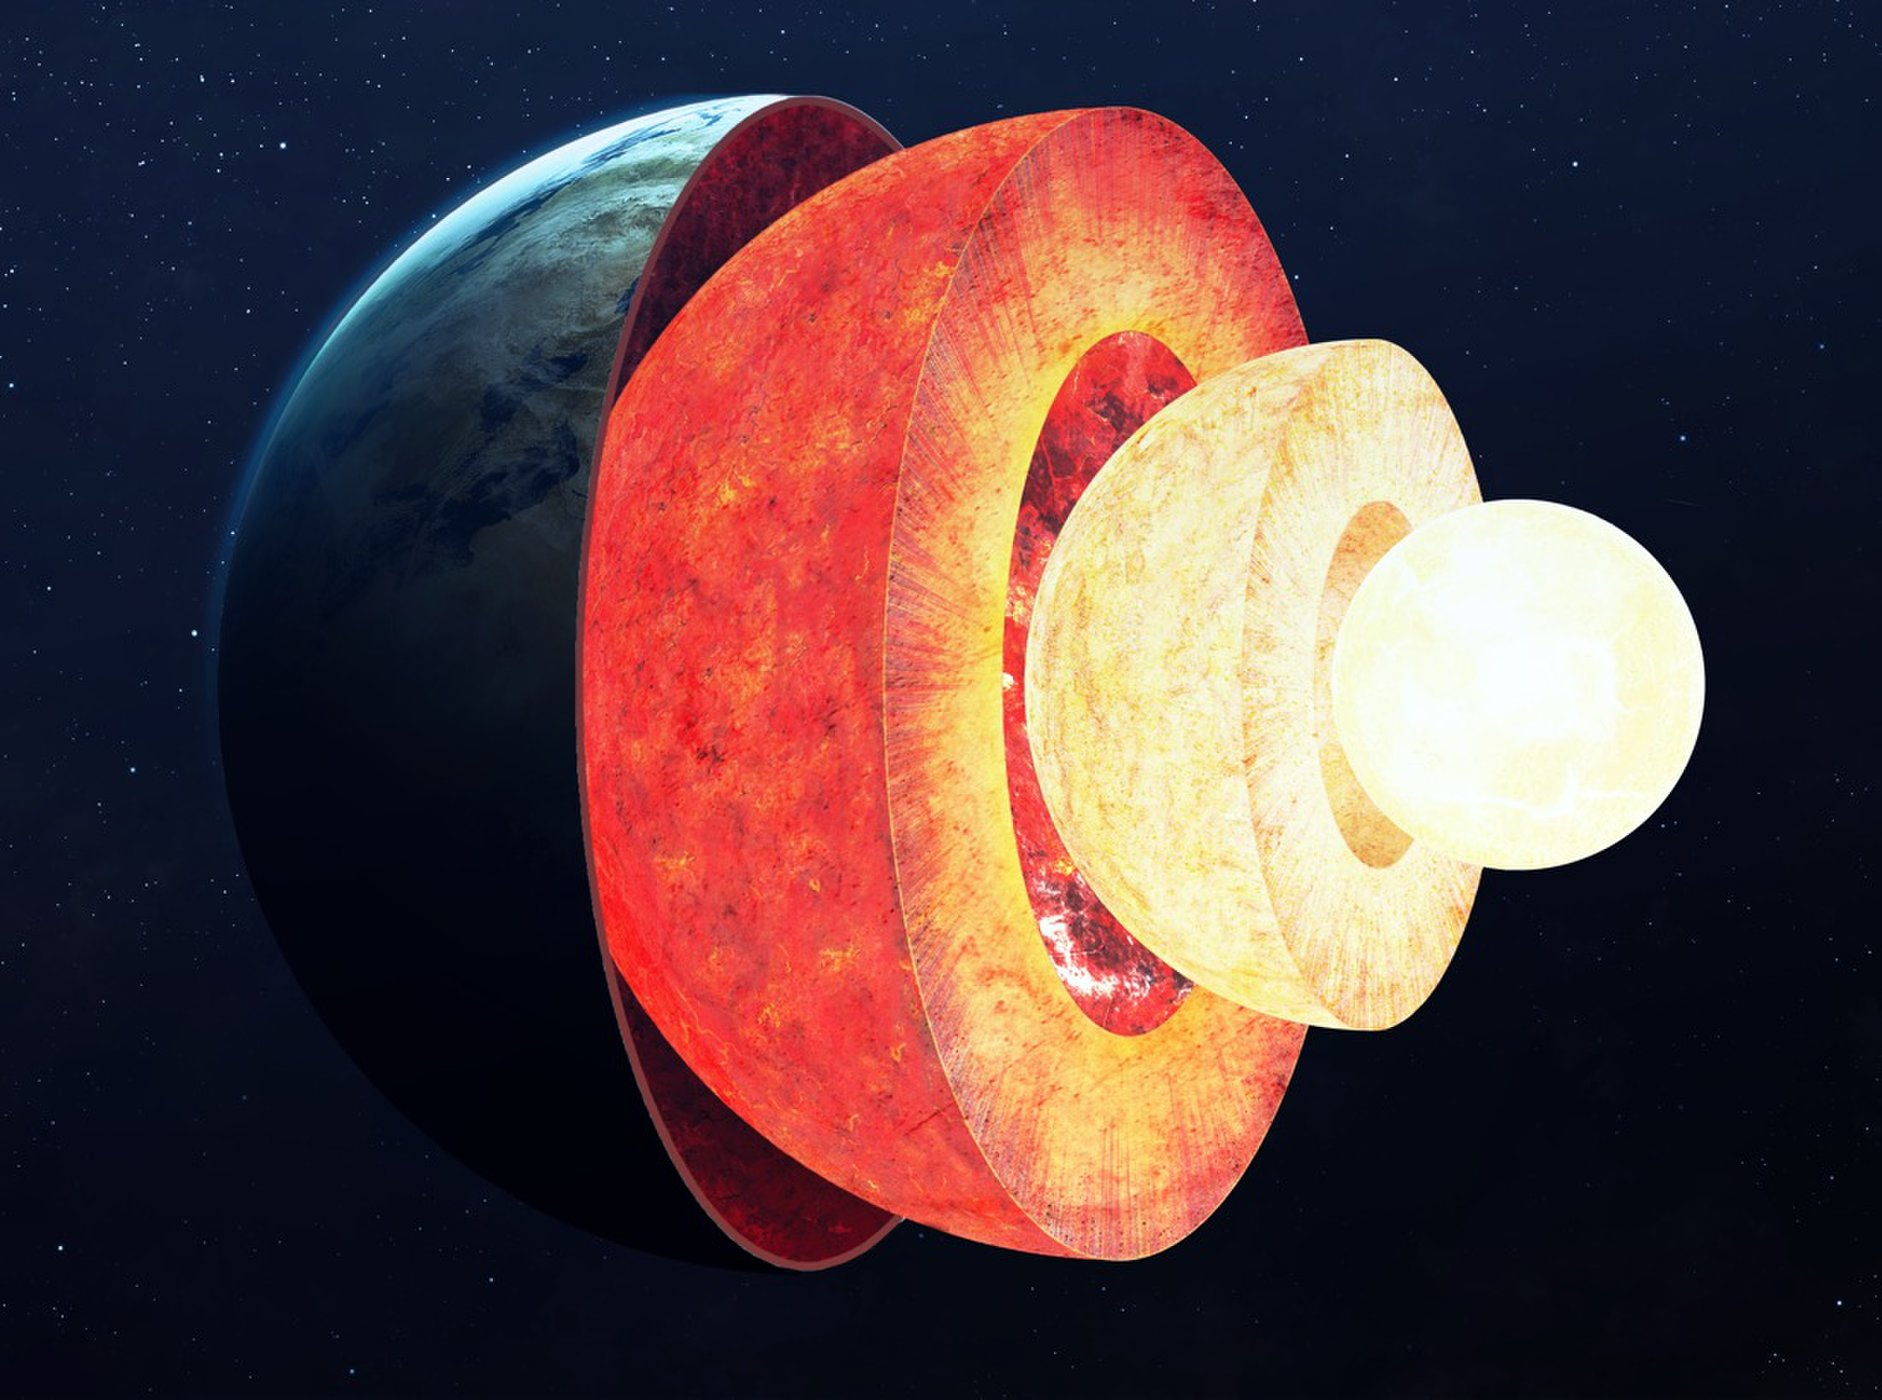 Regions Just Above Earthu0027s Core, In The Mantle Layer, Could Behave Like Huge  Lava Lamps, Says One Expert. There, Blobs Of The Molten Rock Would  Periodically ...